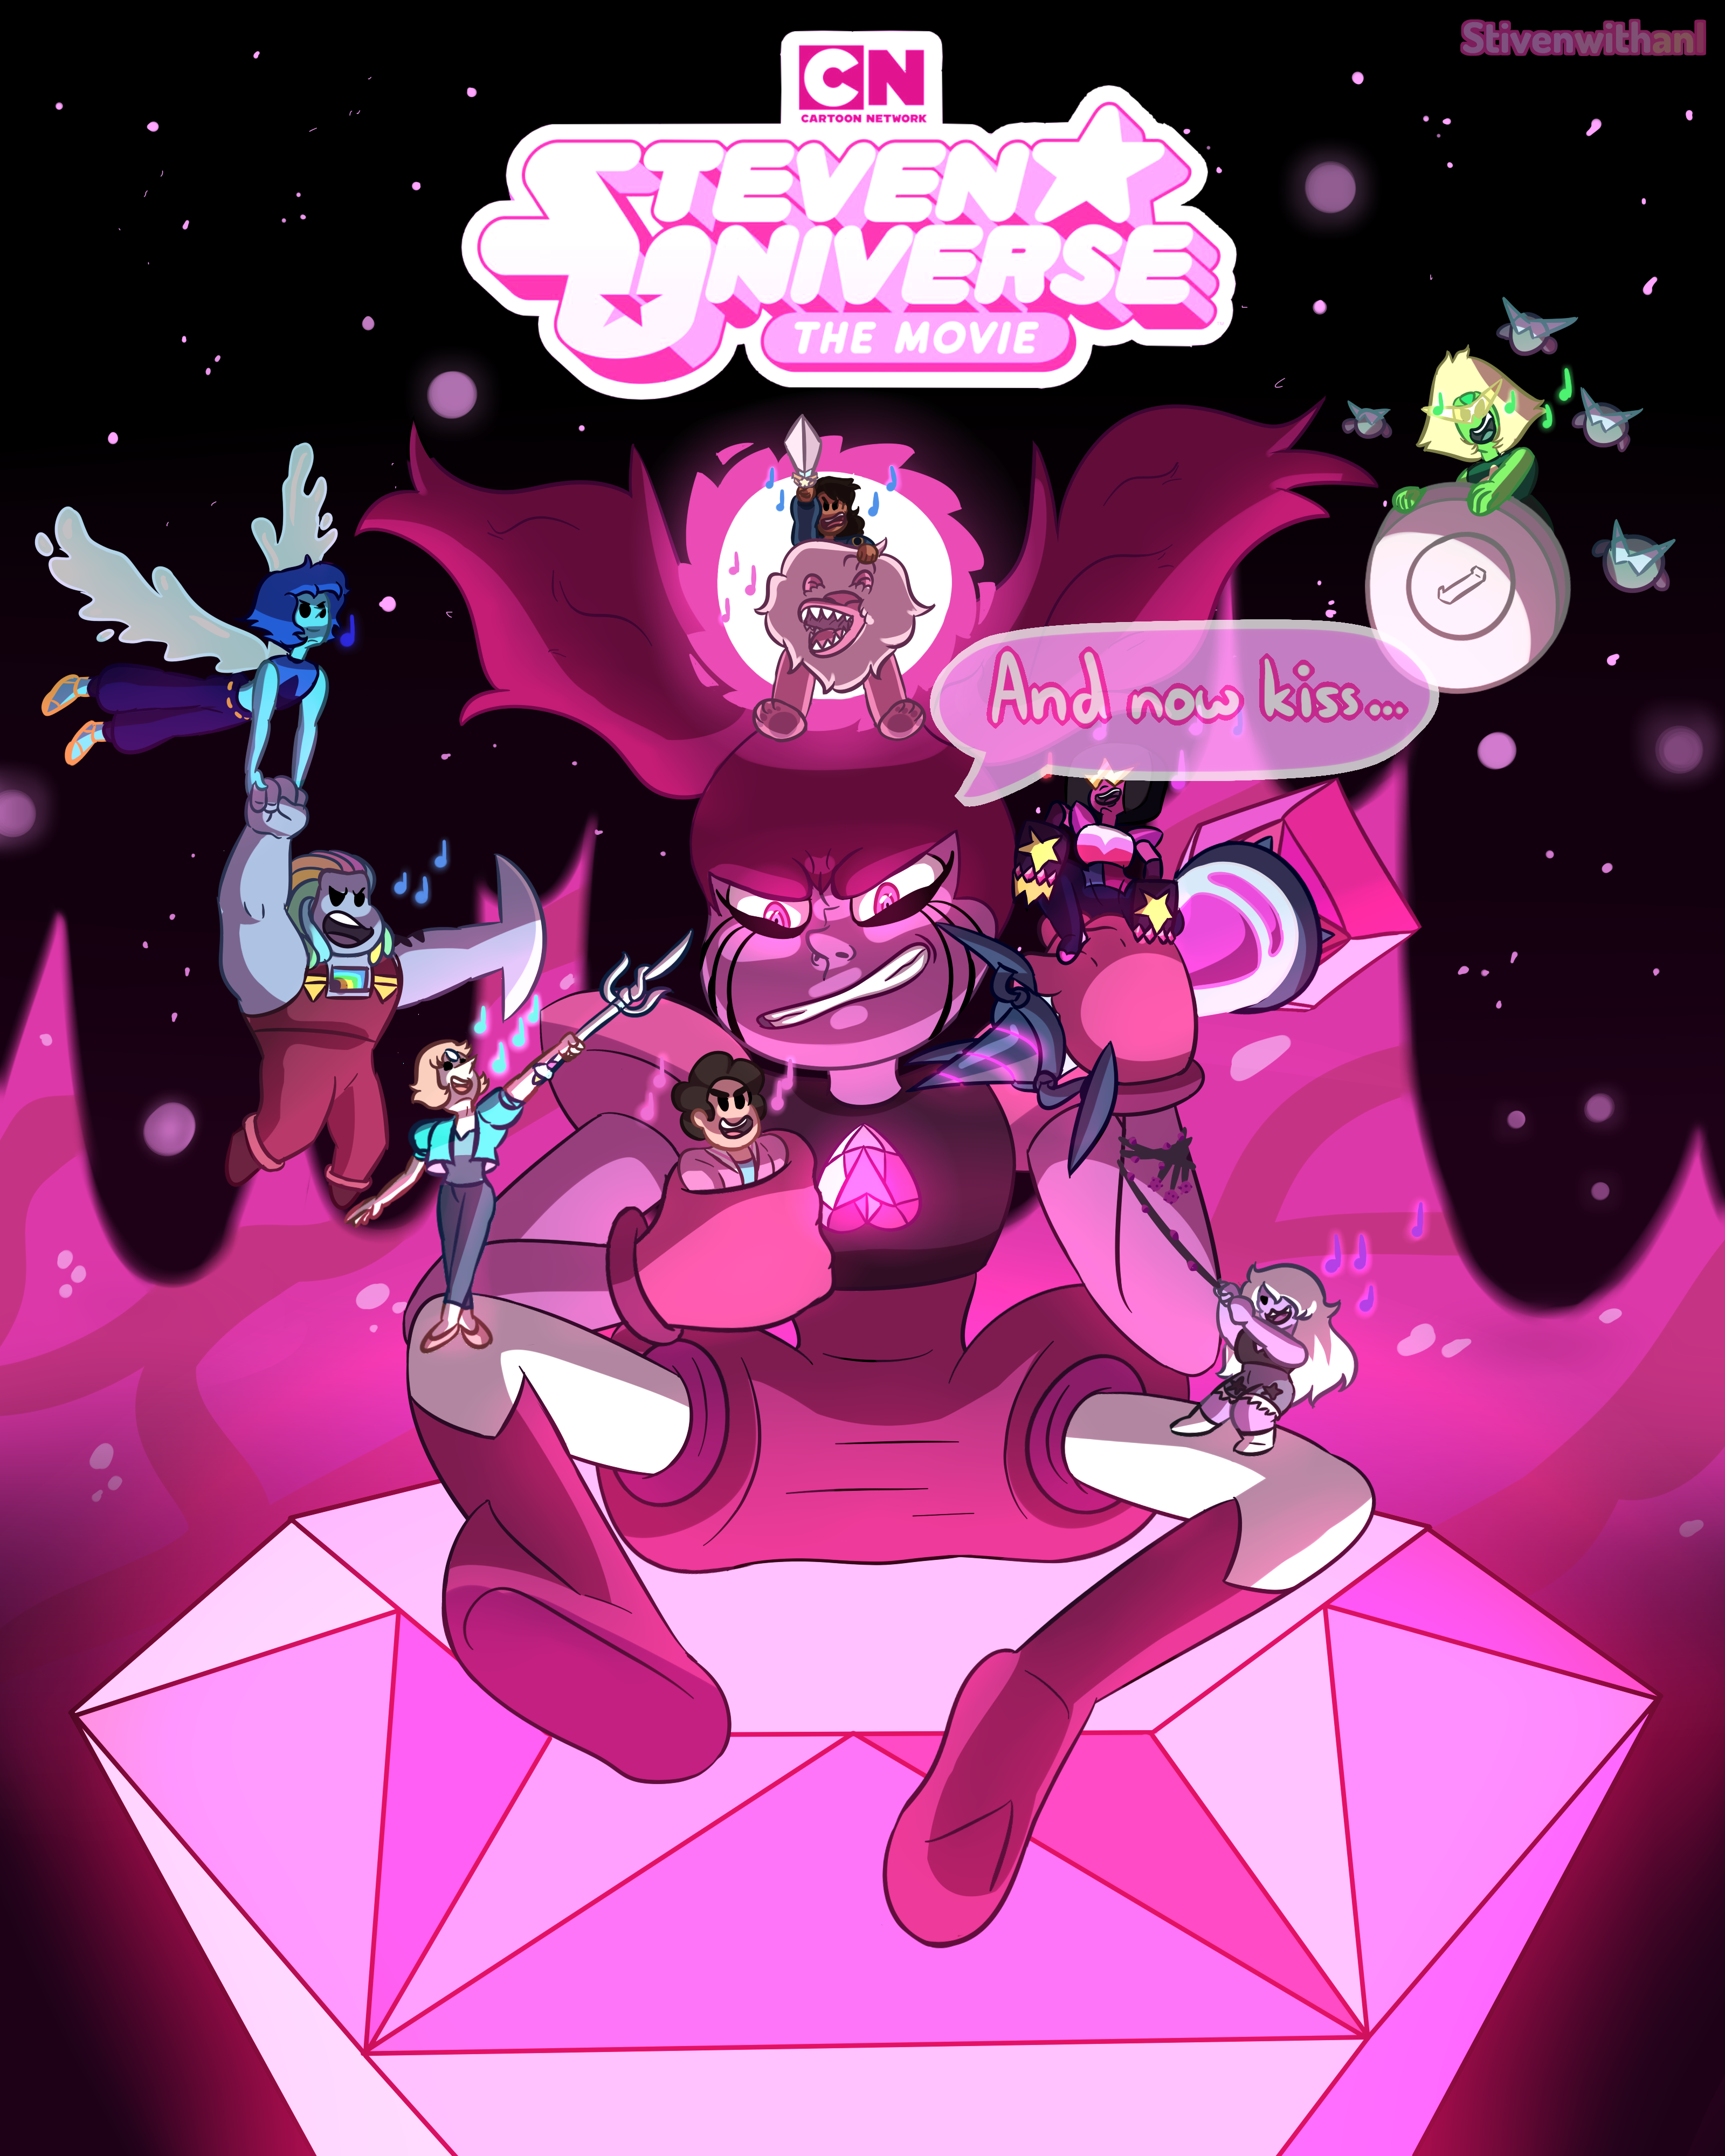 Steven Universe The Movie Poster By Stivenwithani On Deviantart